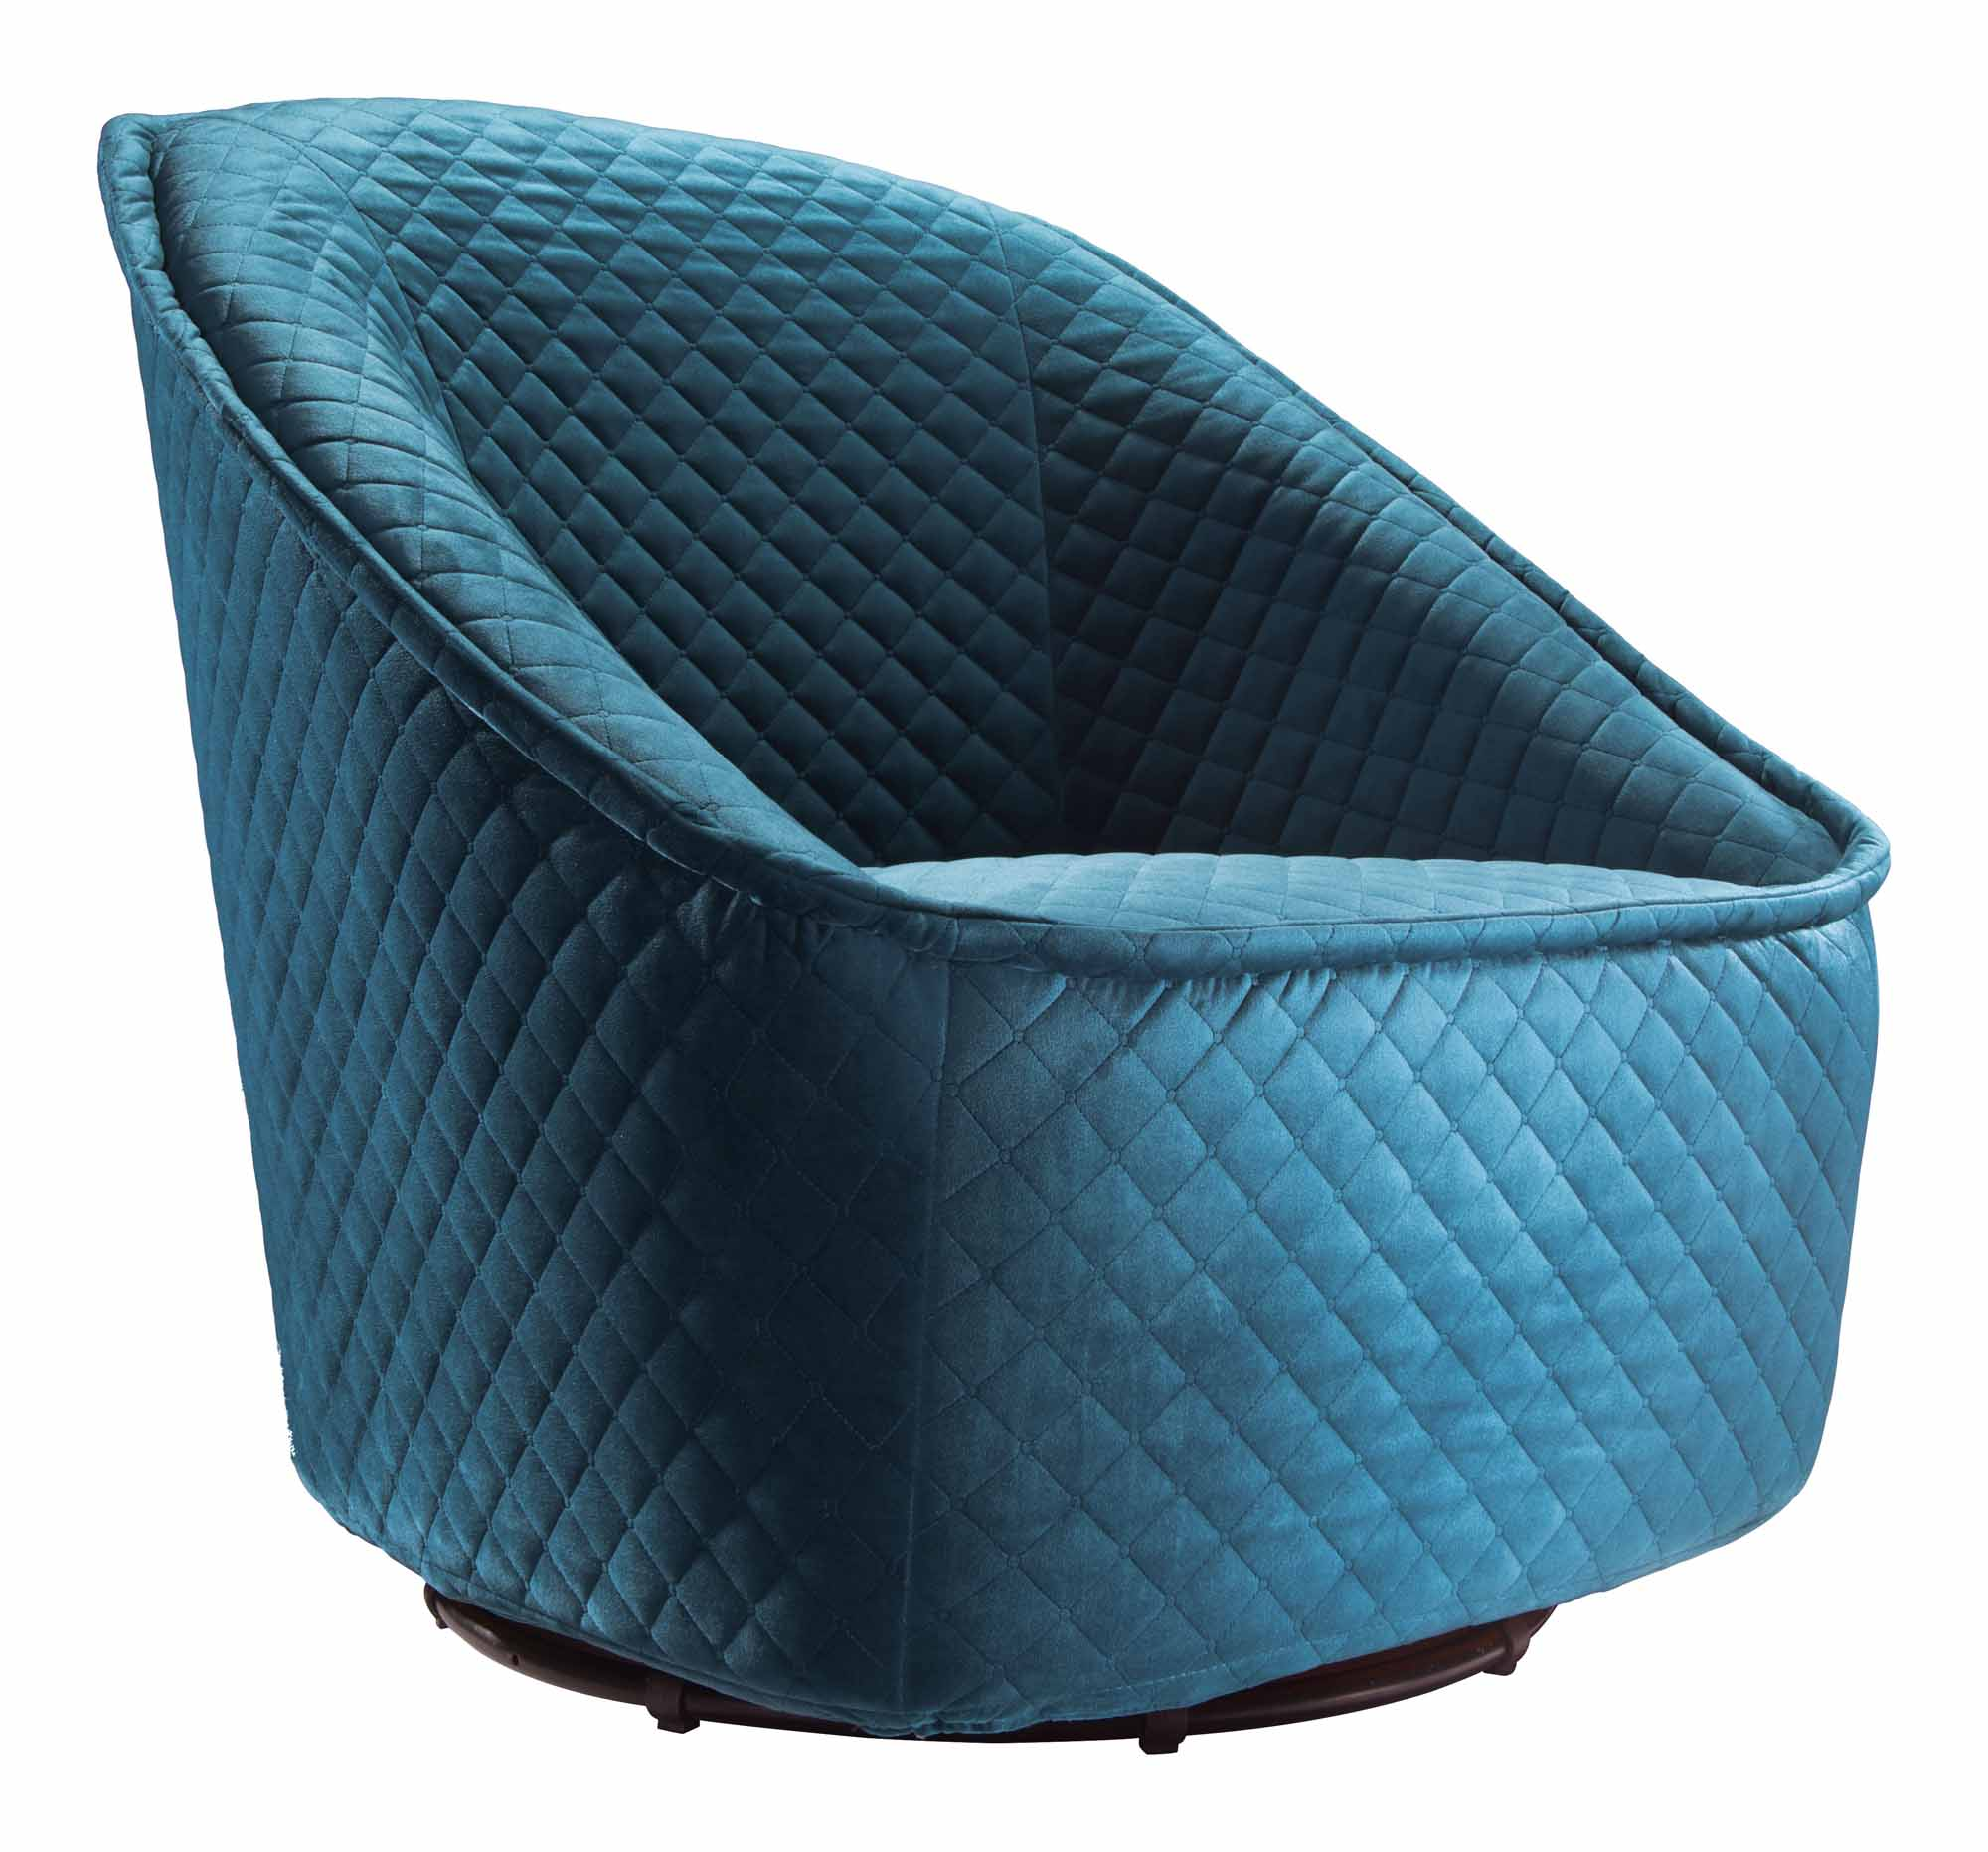 Pug Swivel Chair Aquamarine by Zuo Modern